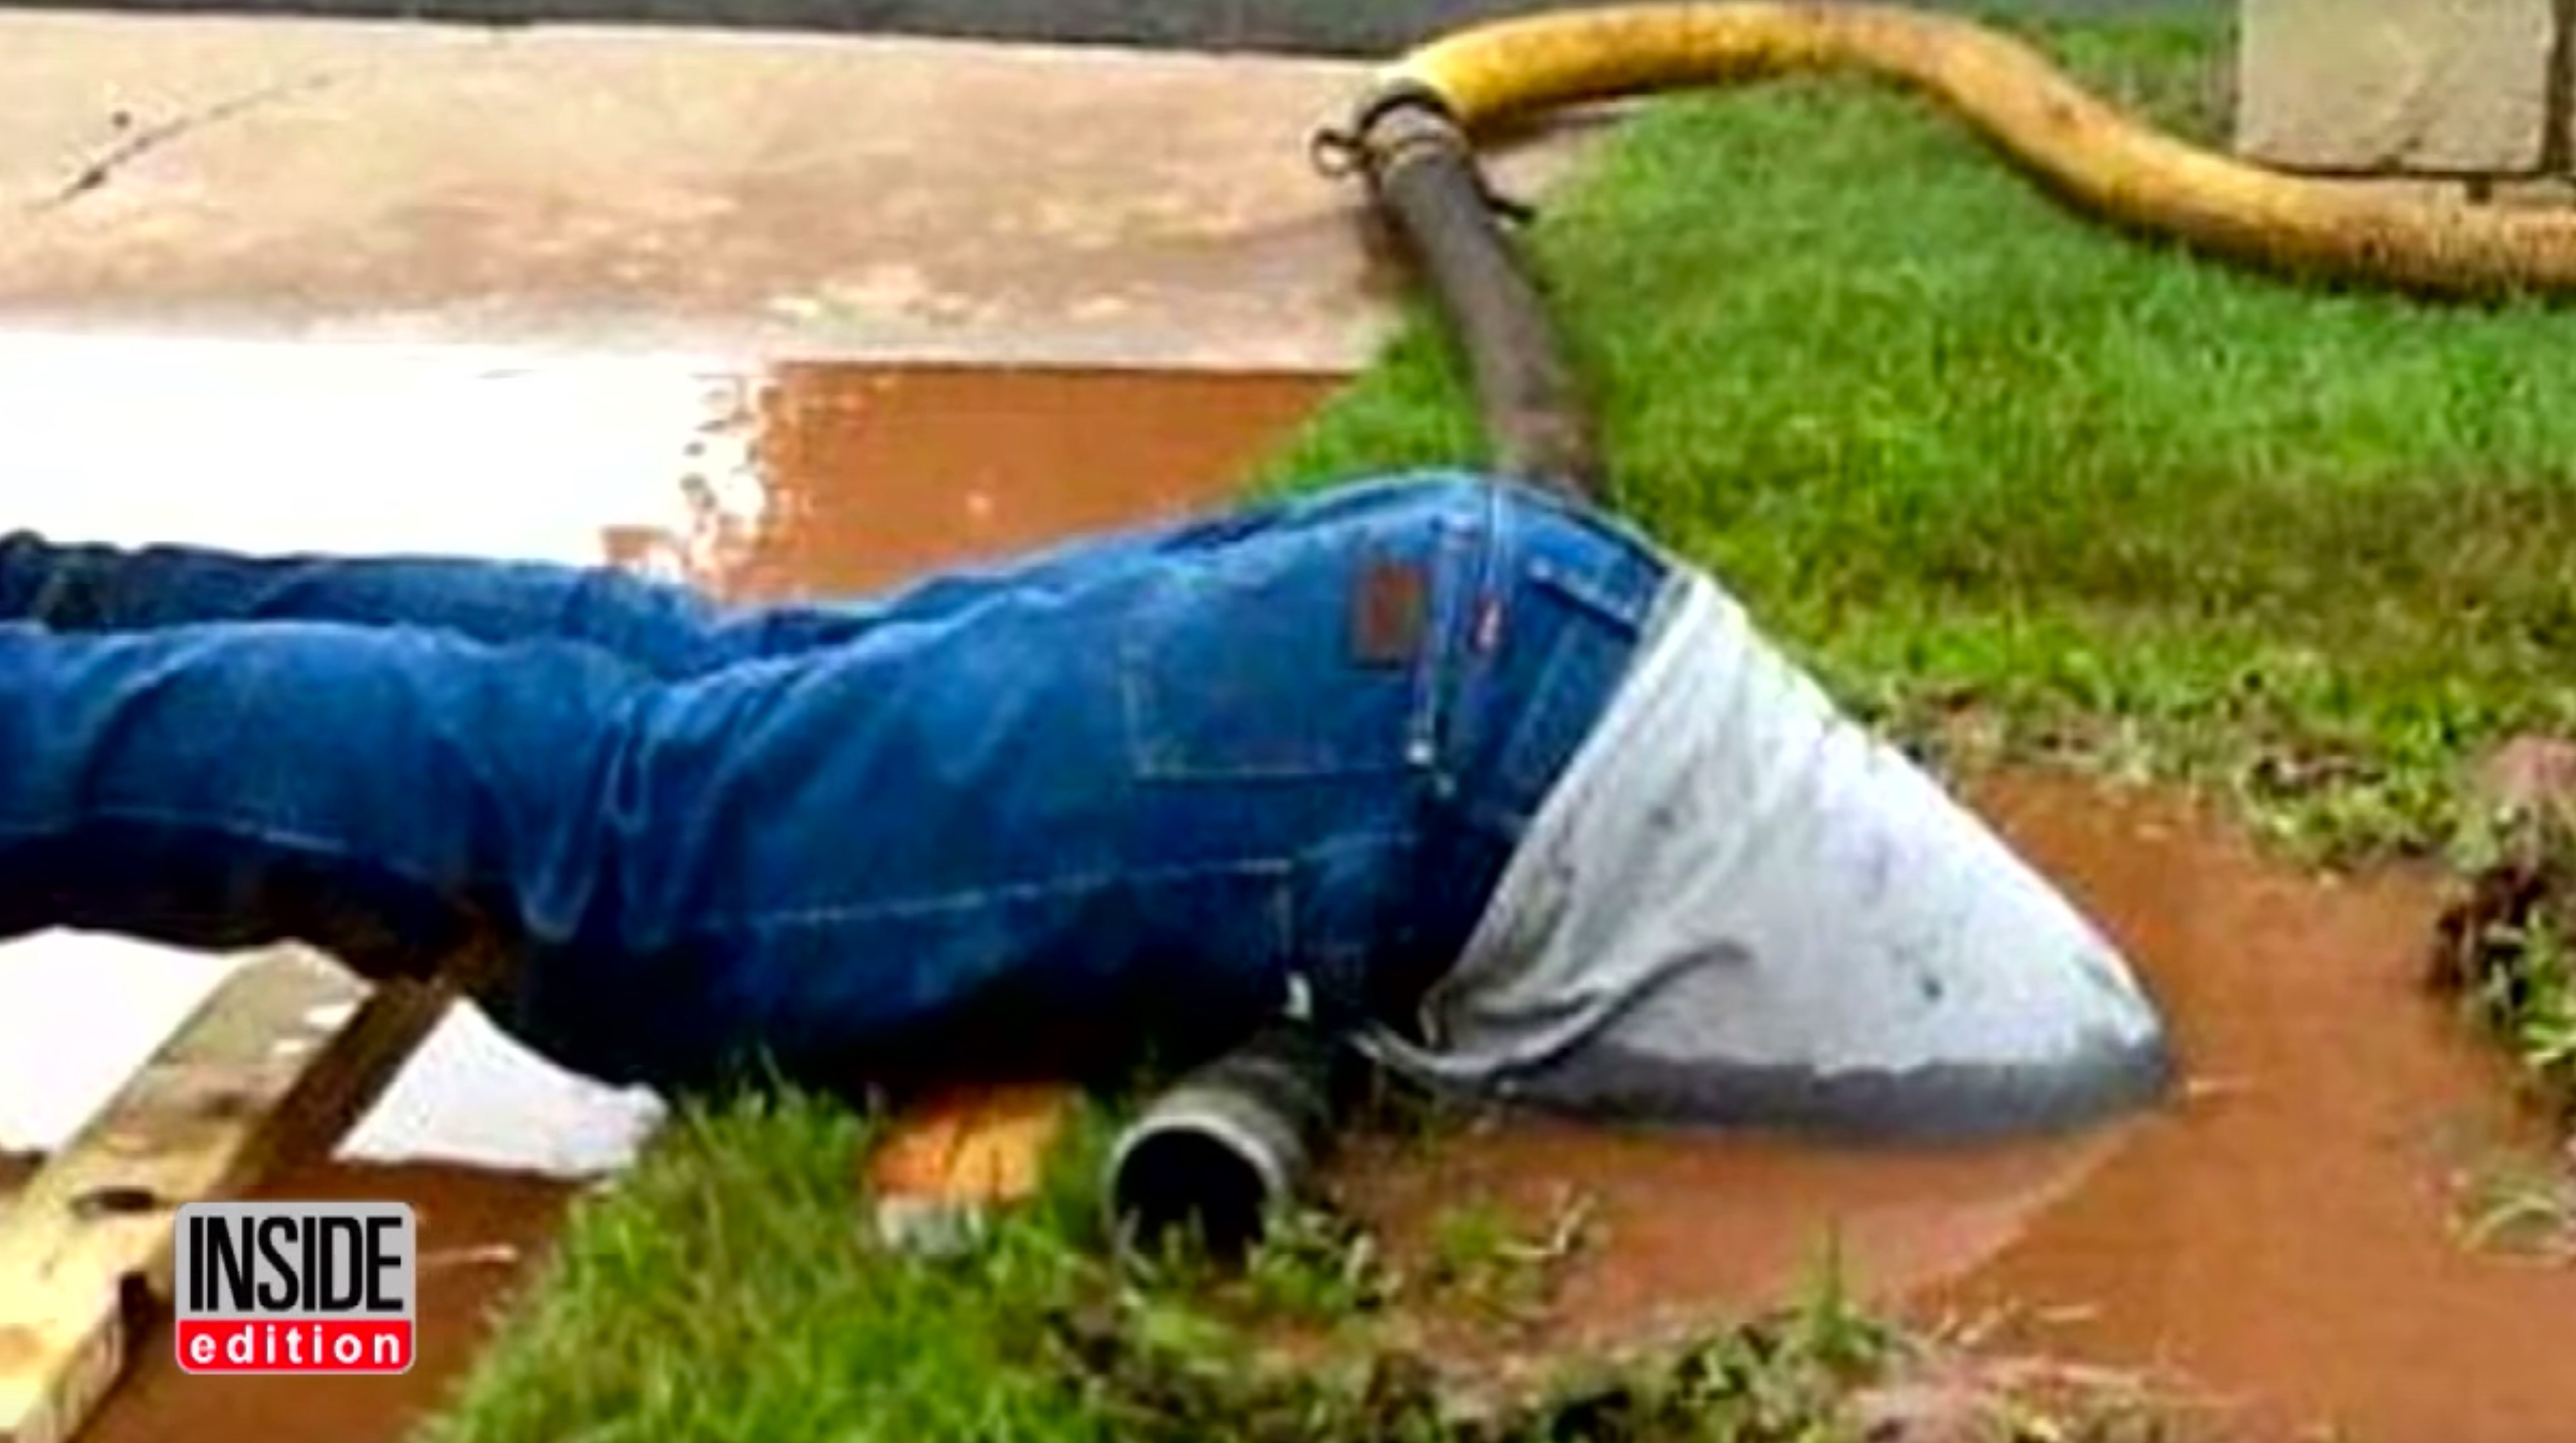 Picture of Jimmie Cox (plumber) submerged to fix a broken pipe